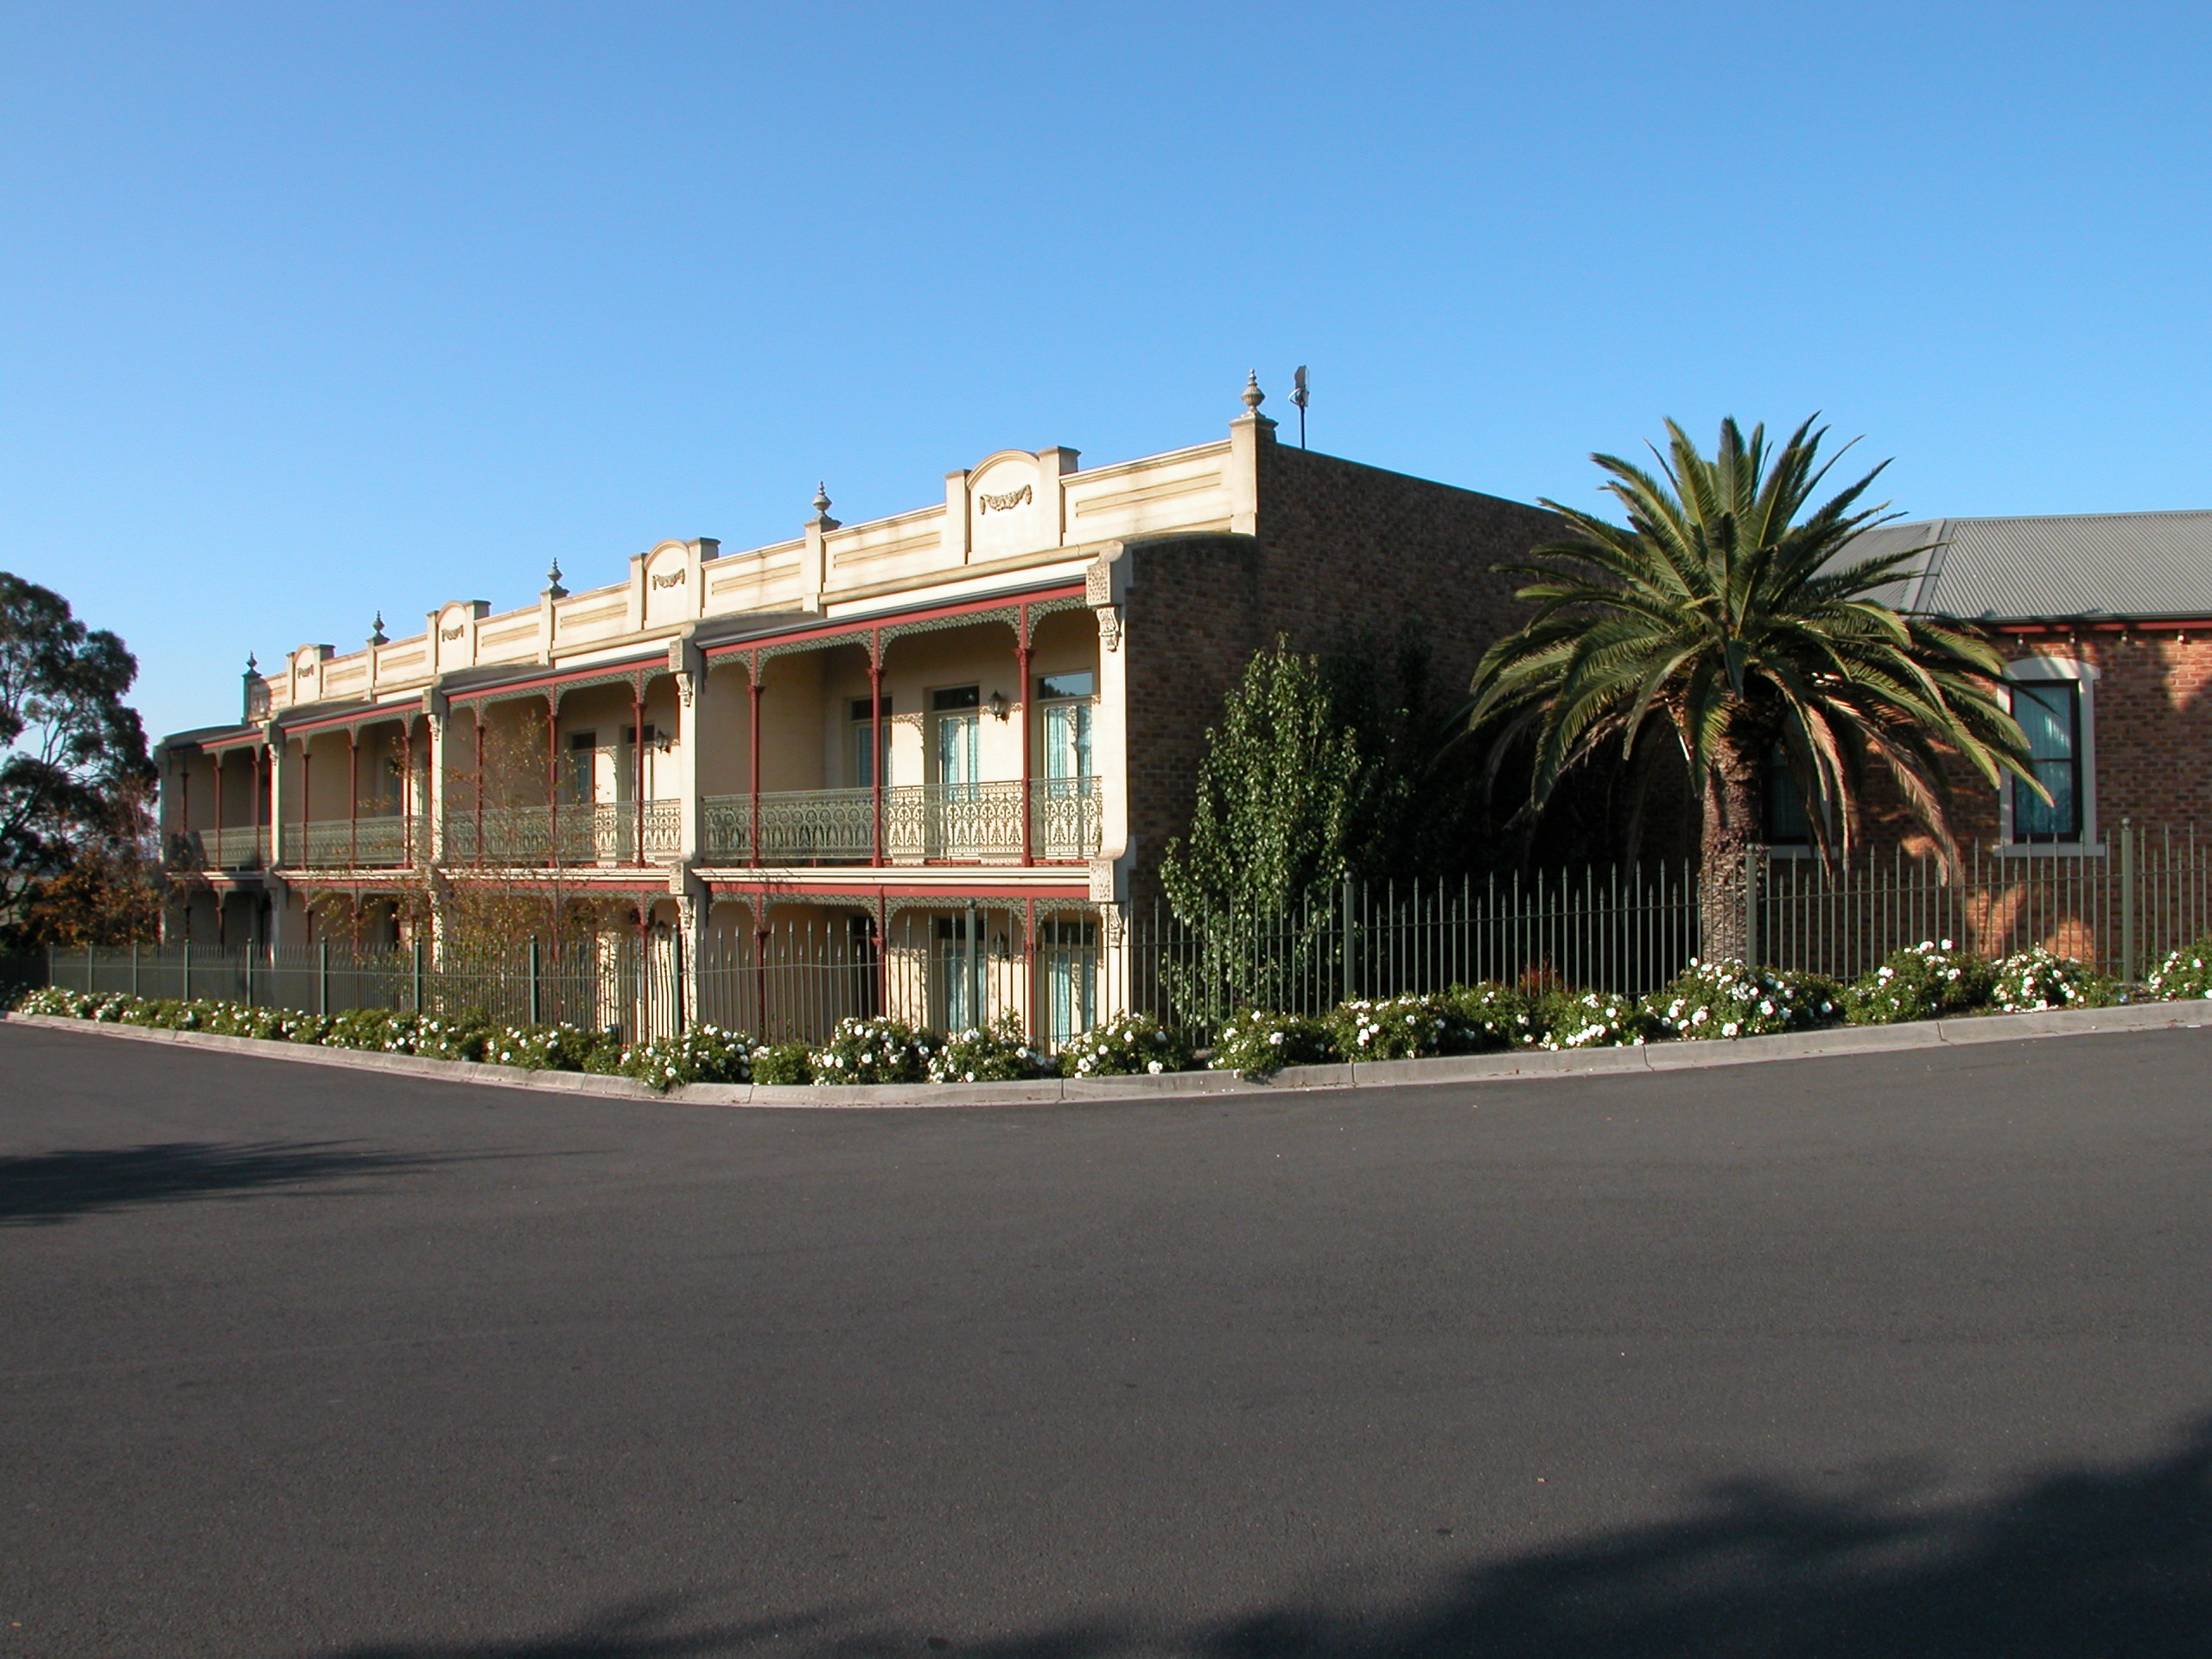 The Terrace Motel